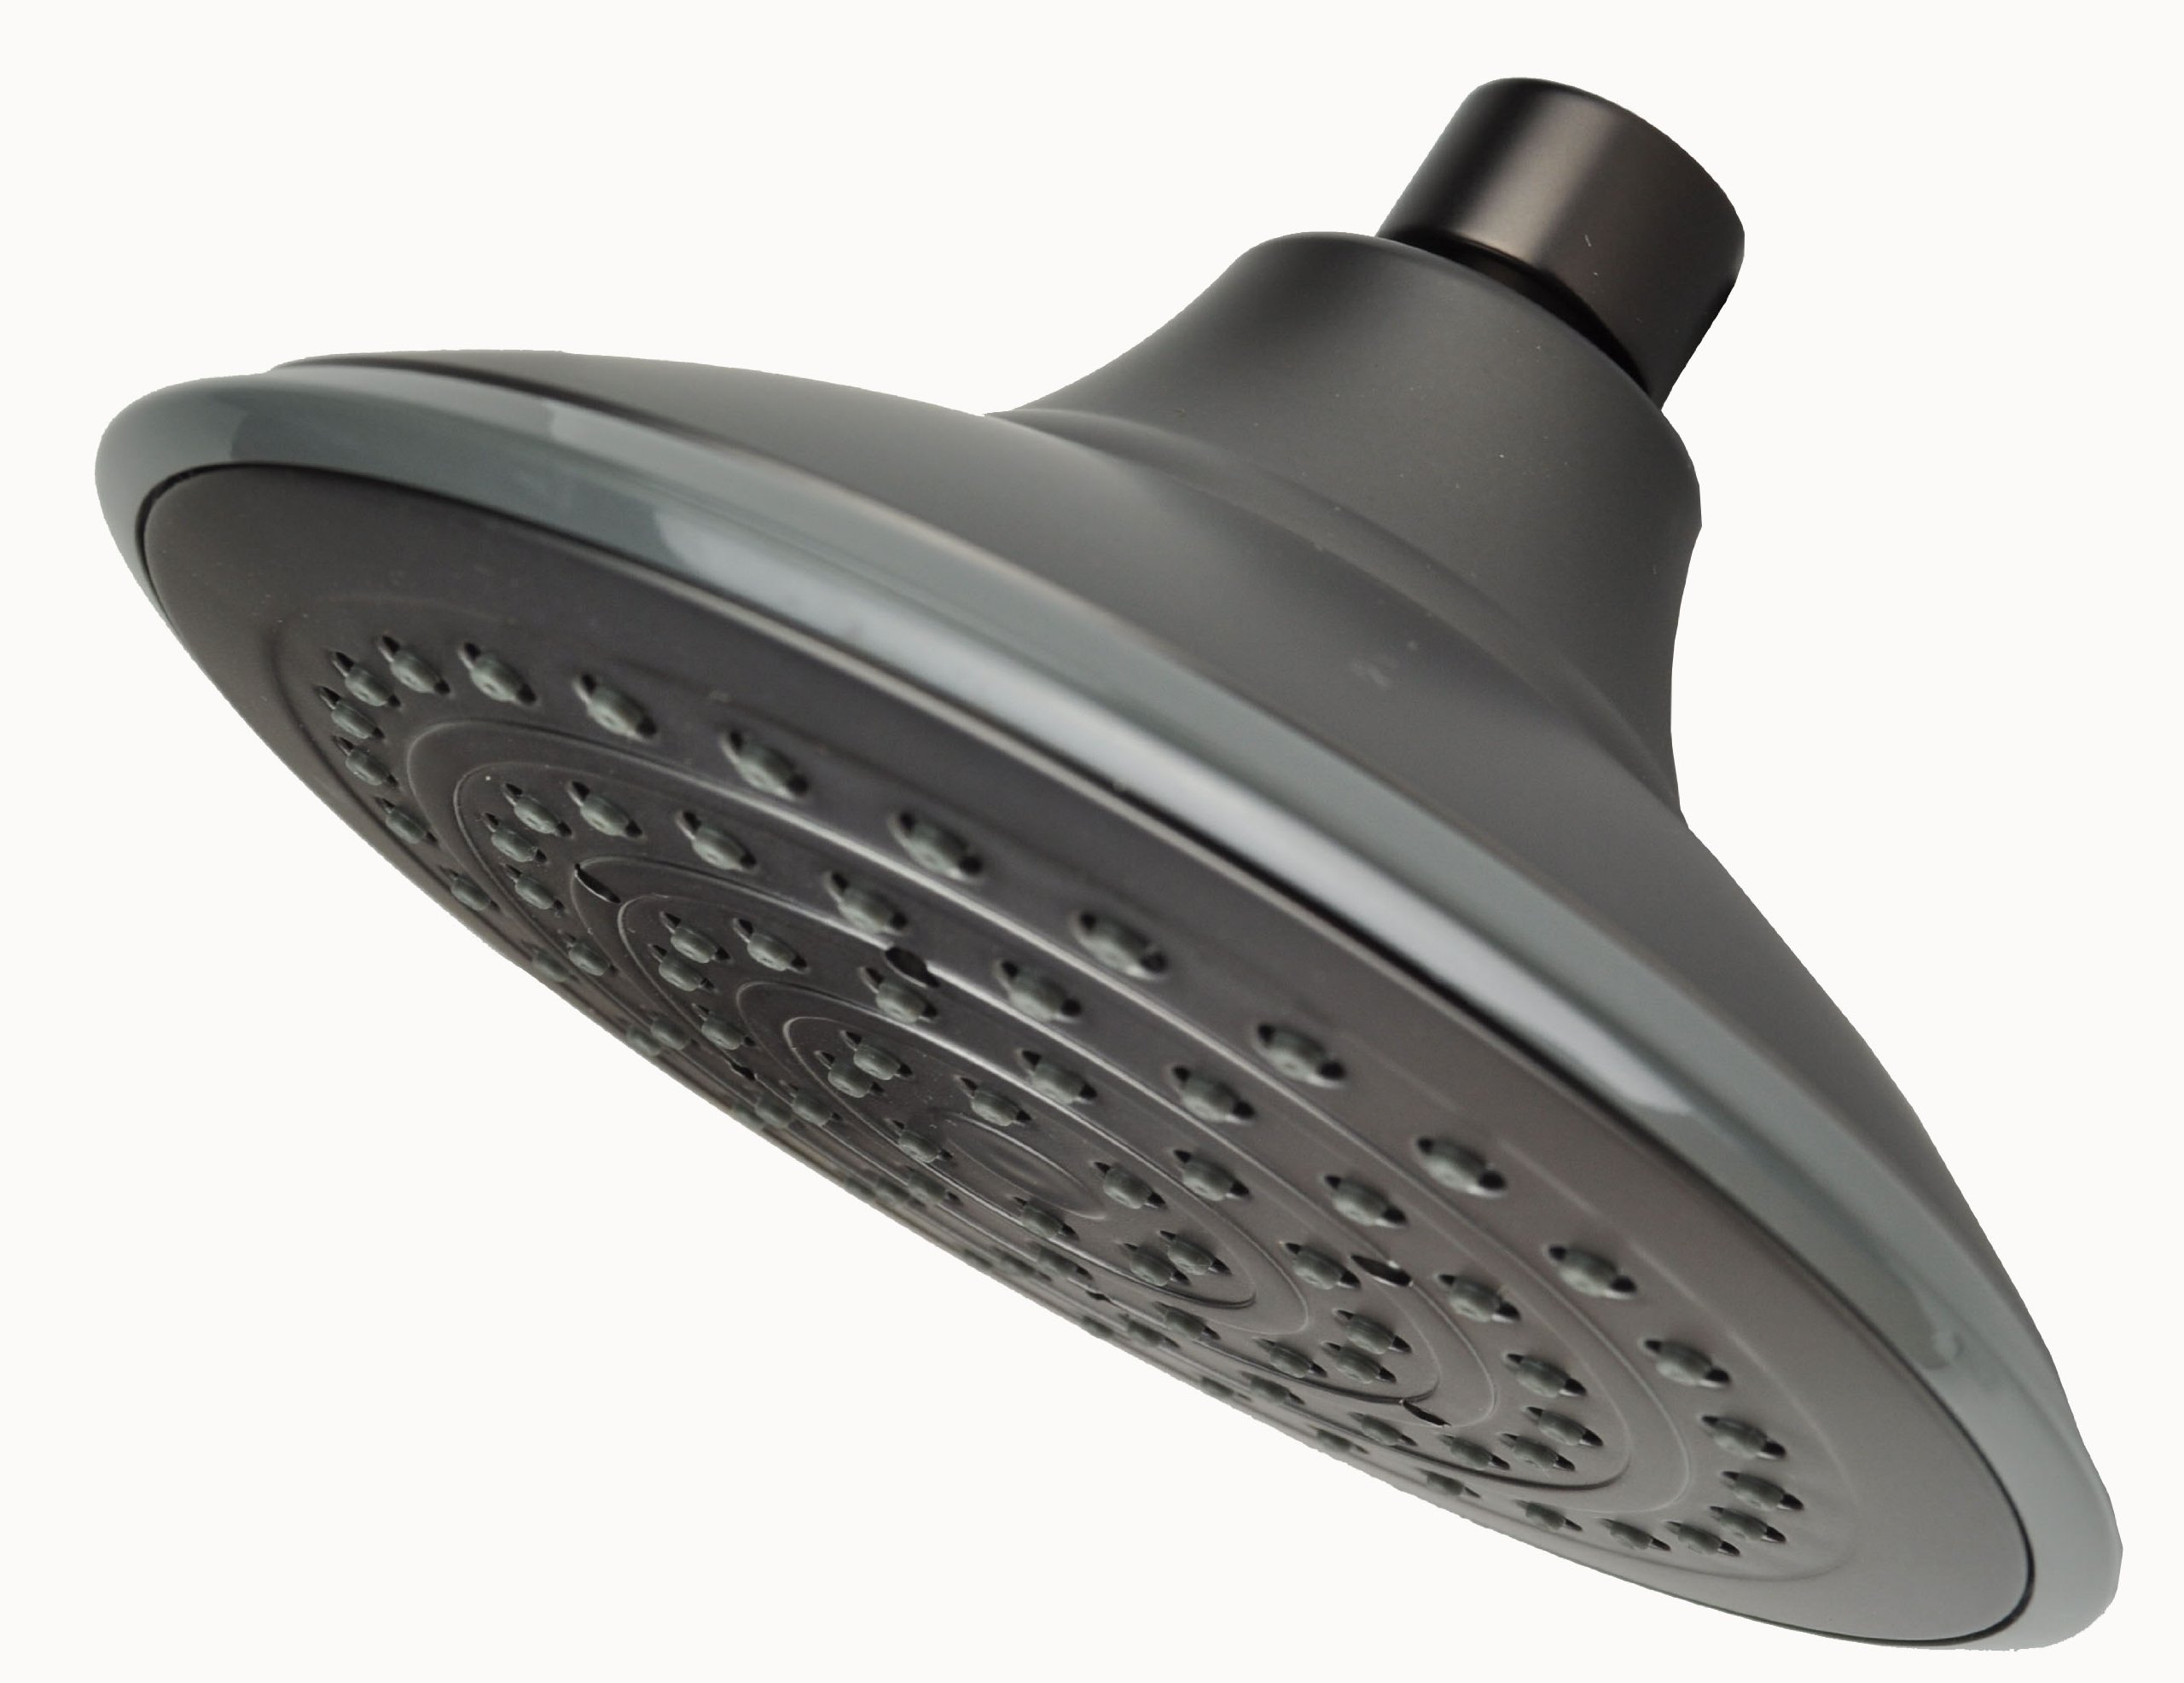 Showerheads, Oil Rubbed Bronze Finish, 6'' Face, Anti-clog Removable Water Restrictor for High Flow By Plumb USA